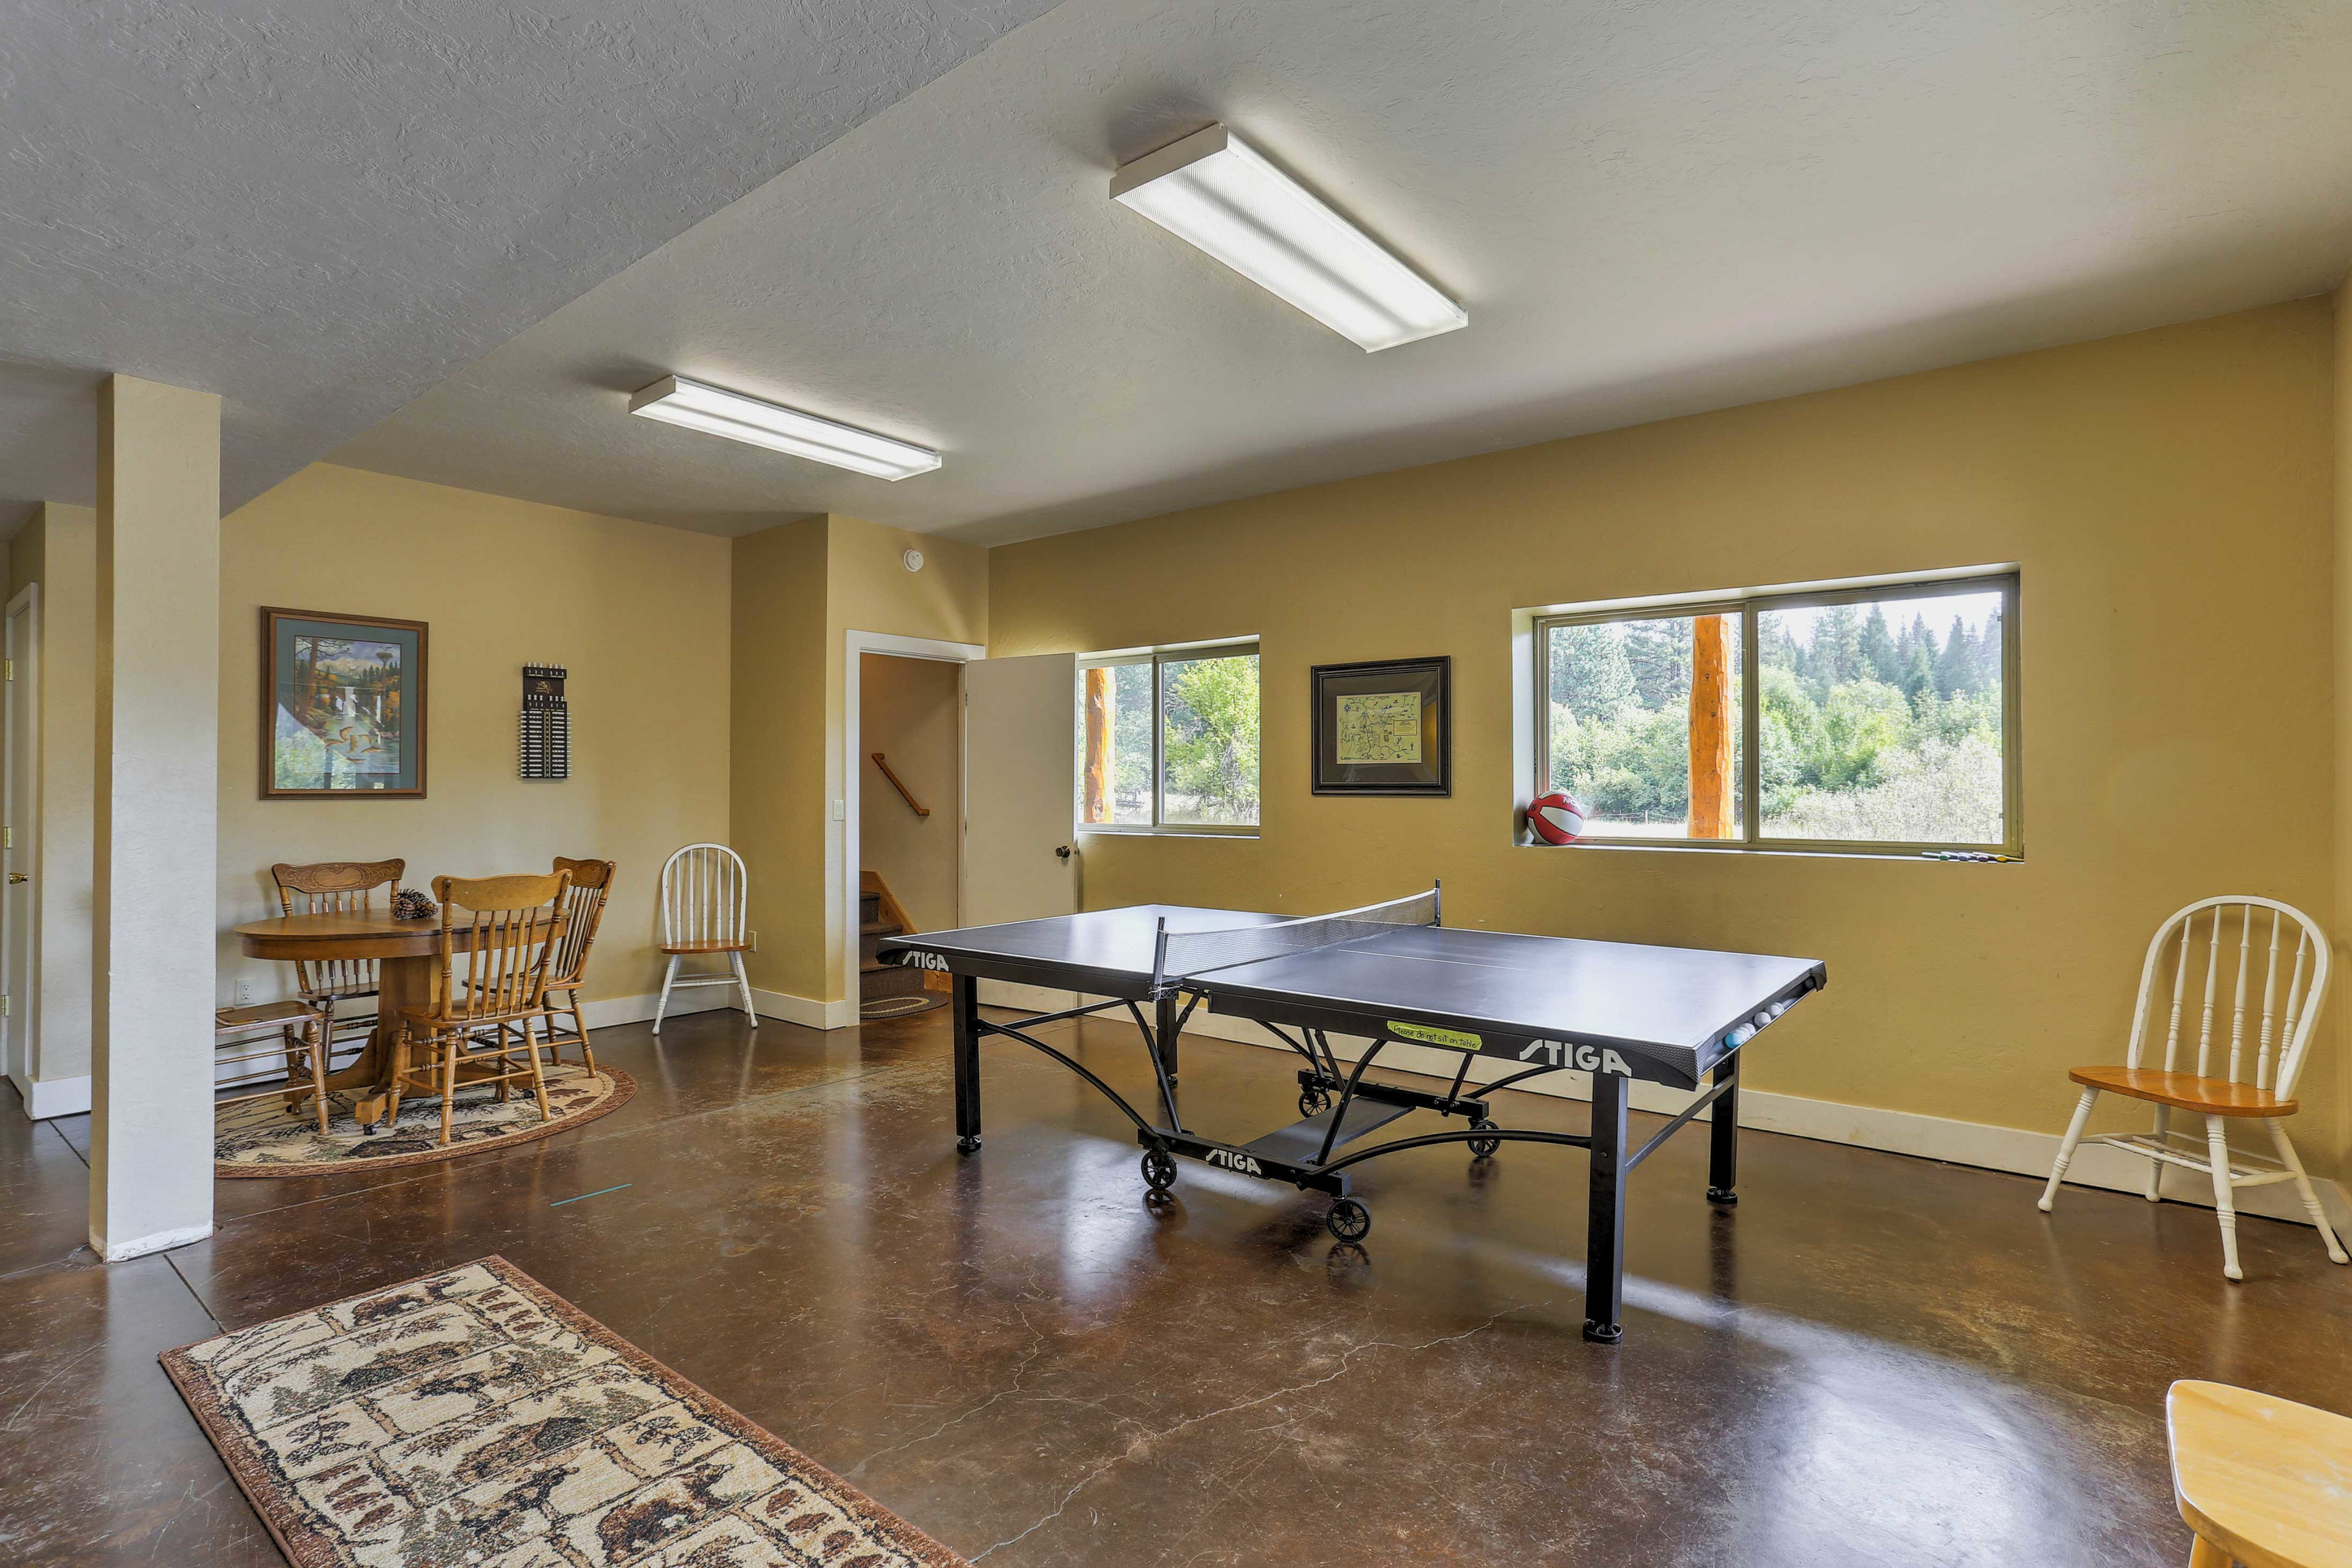 Work up a sweat at the ping pong table or sit down to a game of cards.